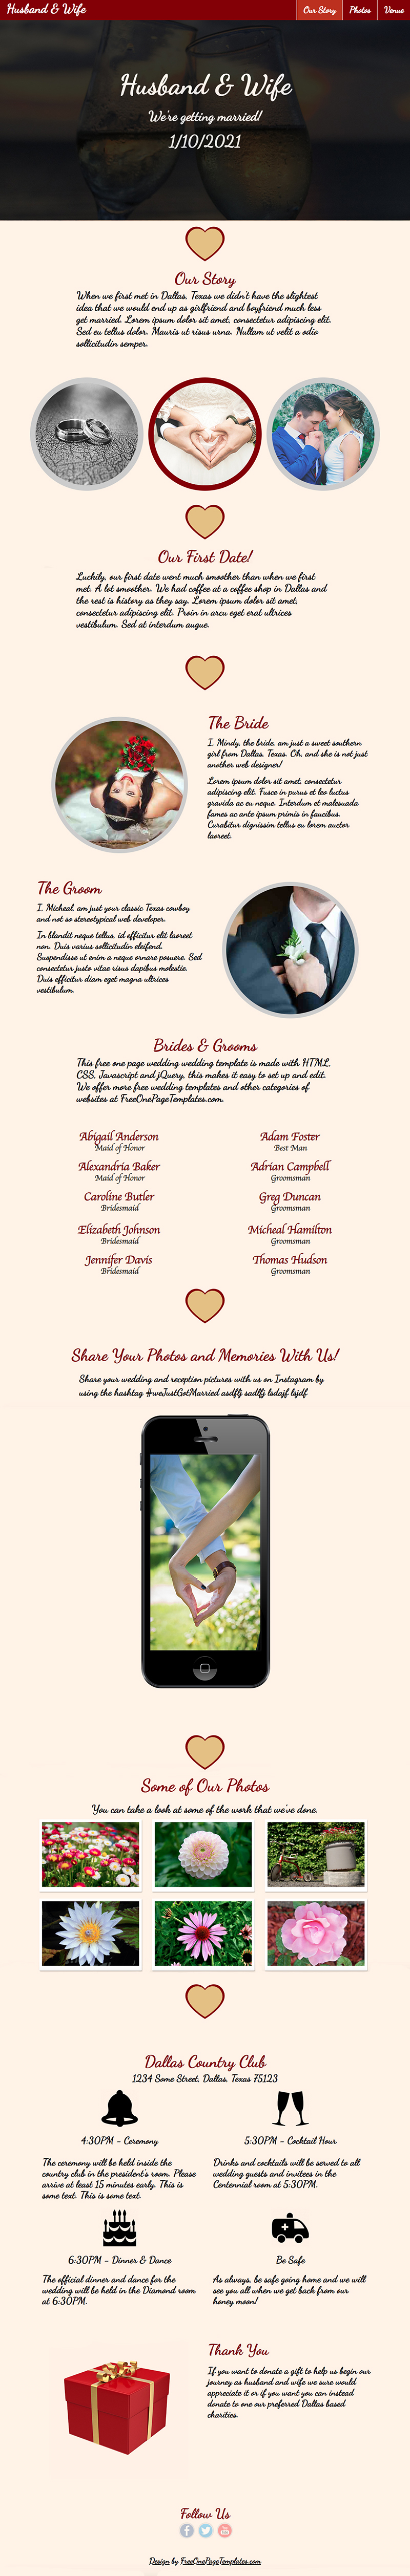 Free One Page Wedding Website Template - Husband & Wife